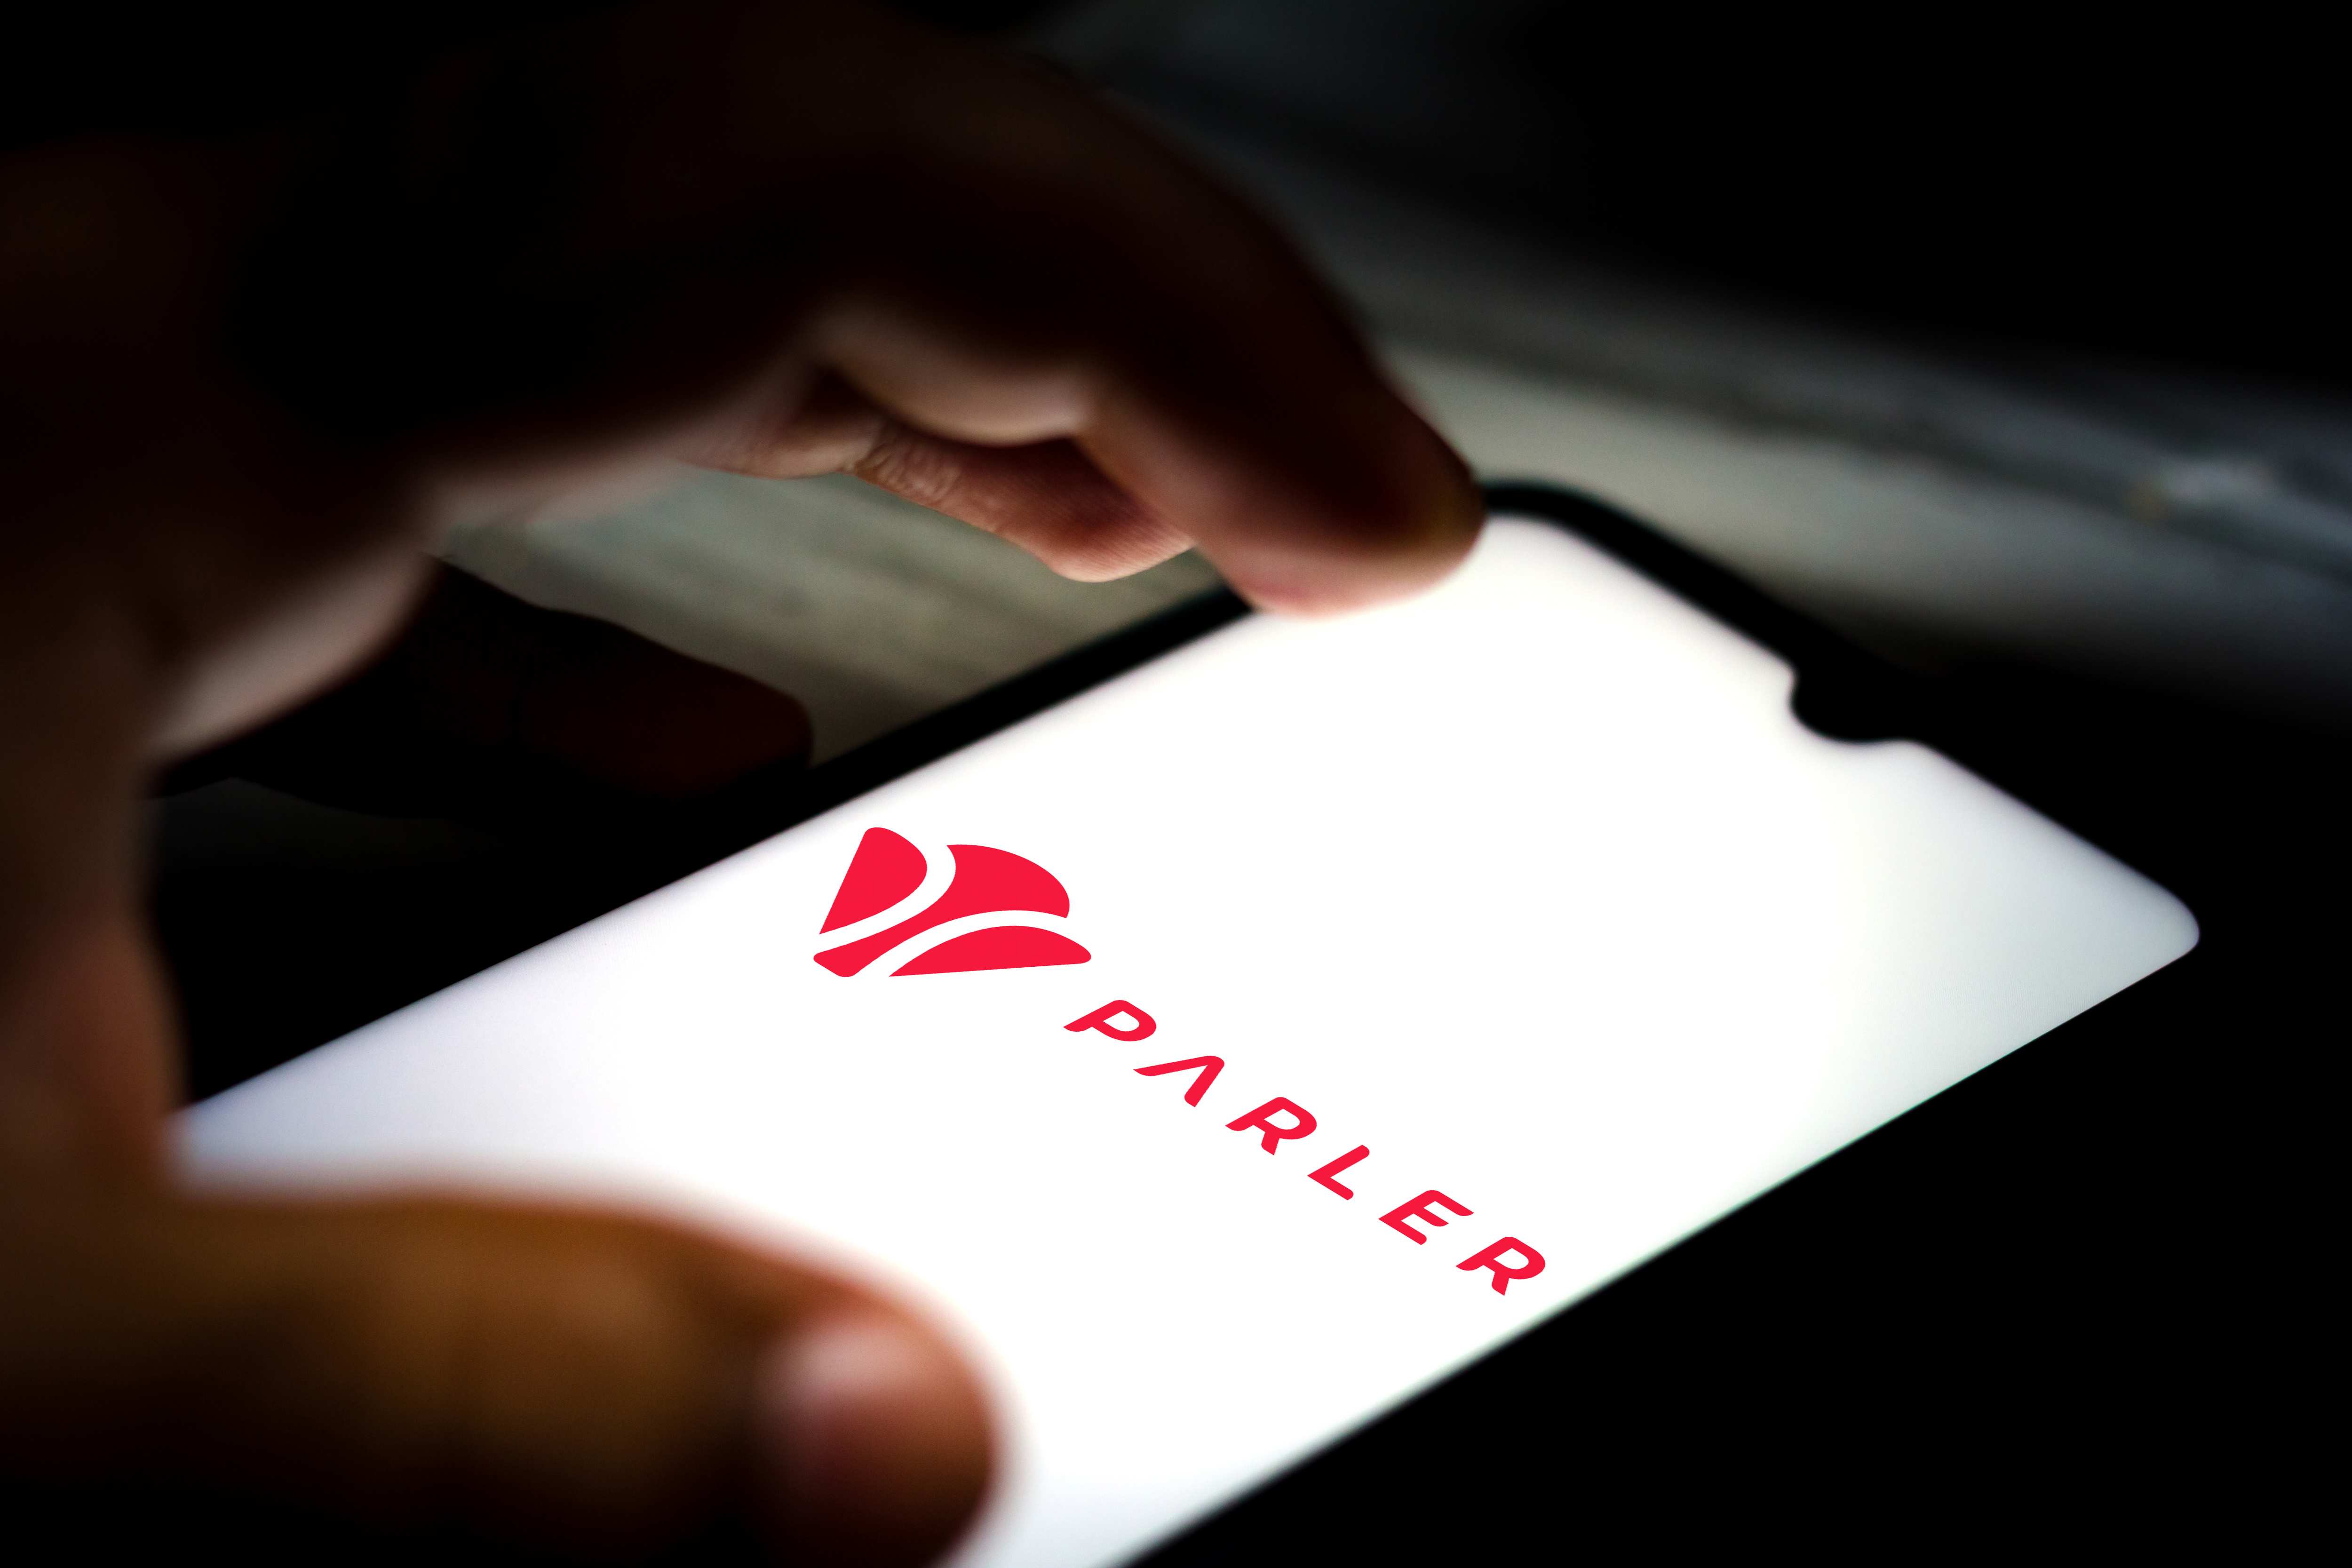 The Parler app on a phone screen.